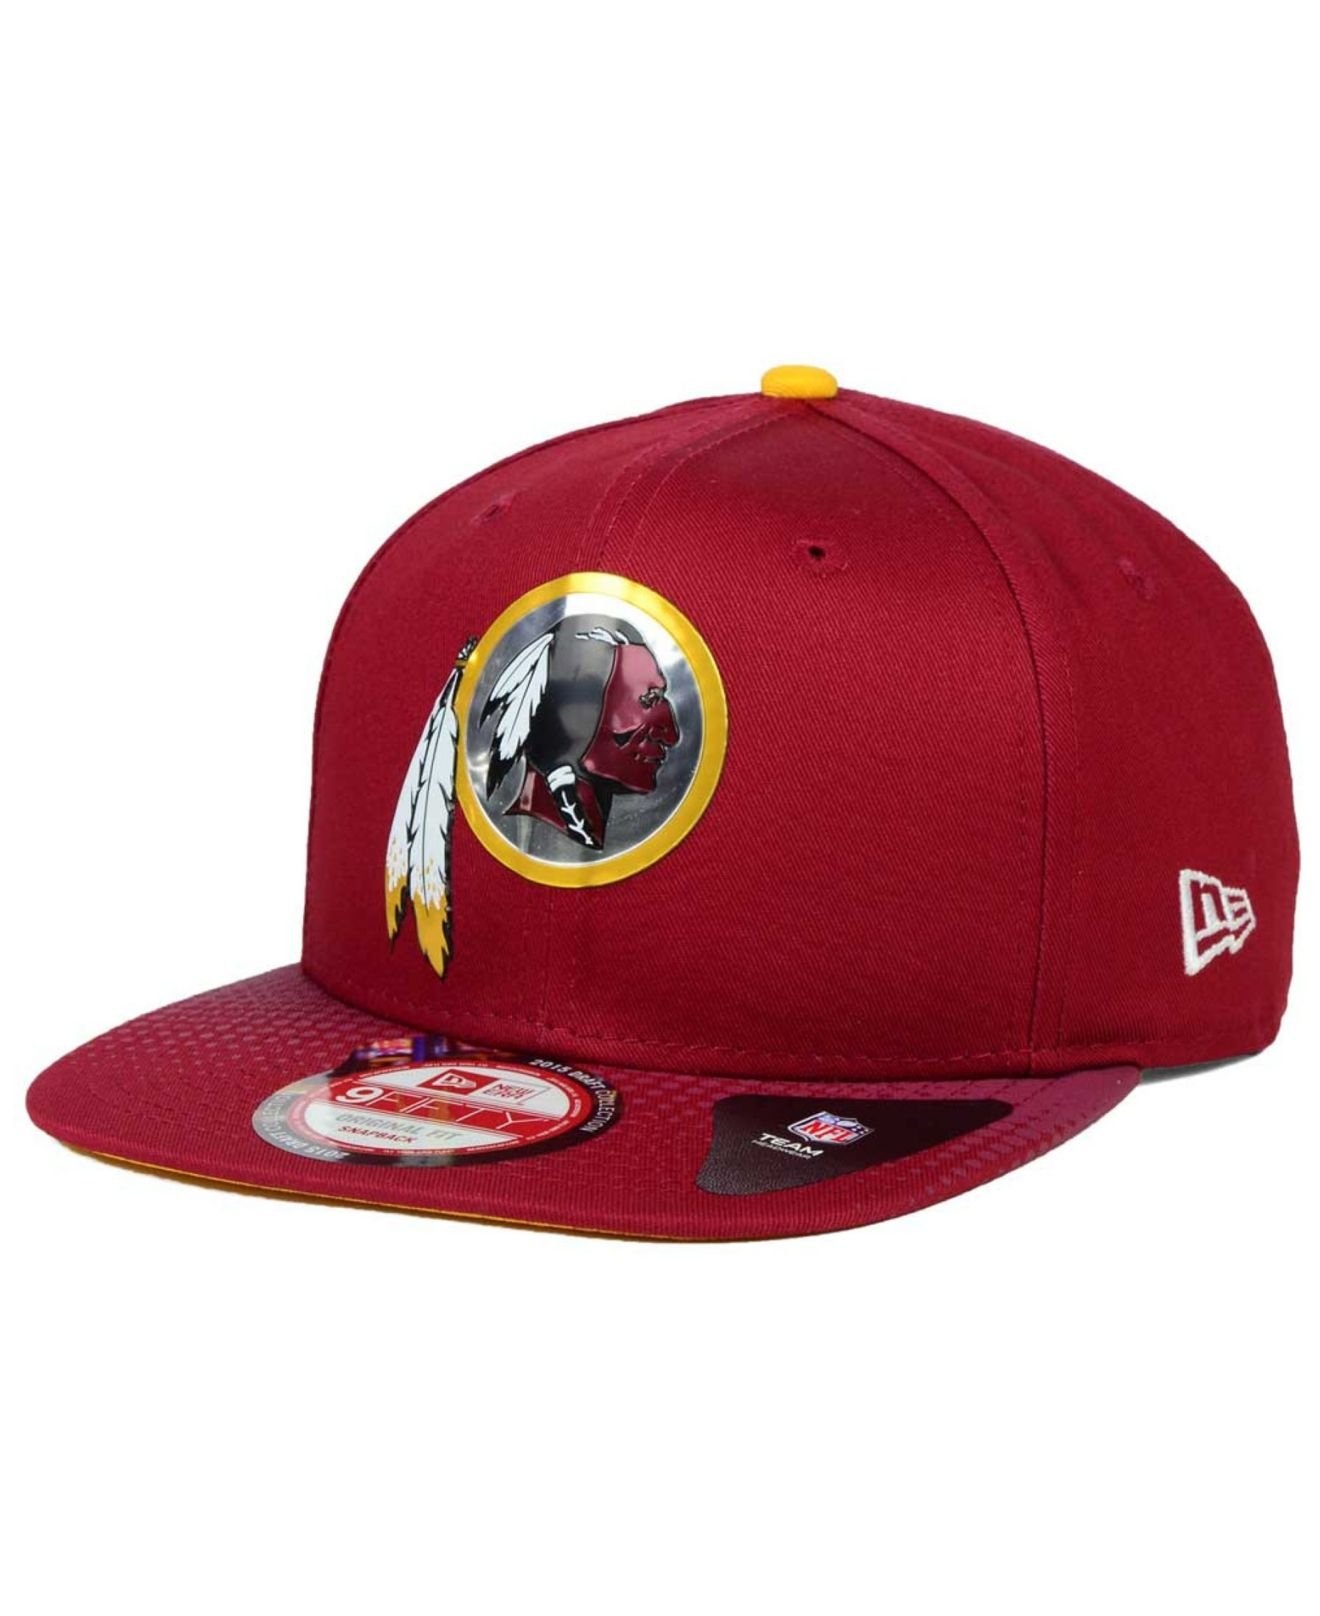 get cheap 77d24 5329e ... new era 9fifty snapback nfl draft day hat 0747d f5470  hot lyst ktz  washington redskins 2015 nfl draft 9fifty snapback cap in 5af36 57ac3